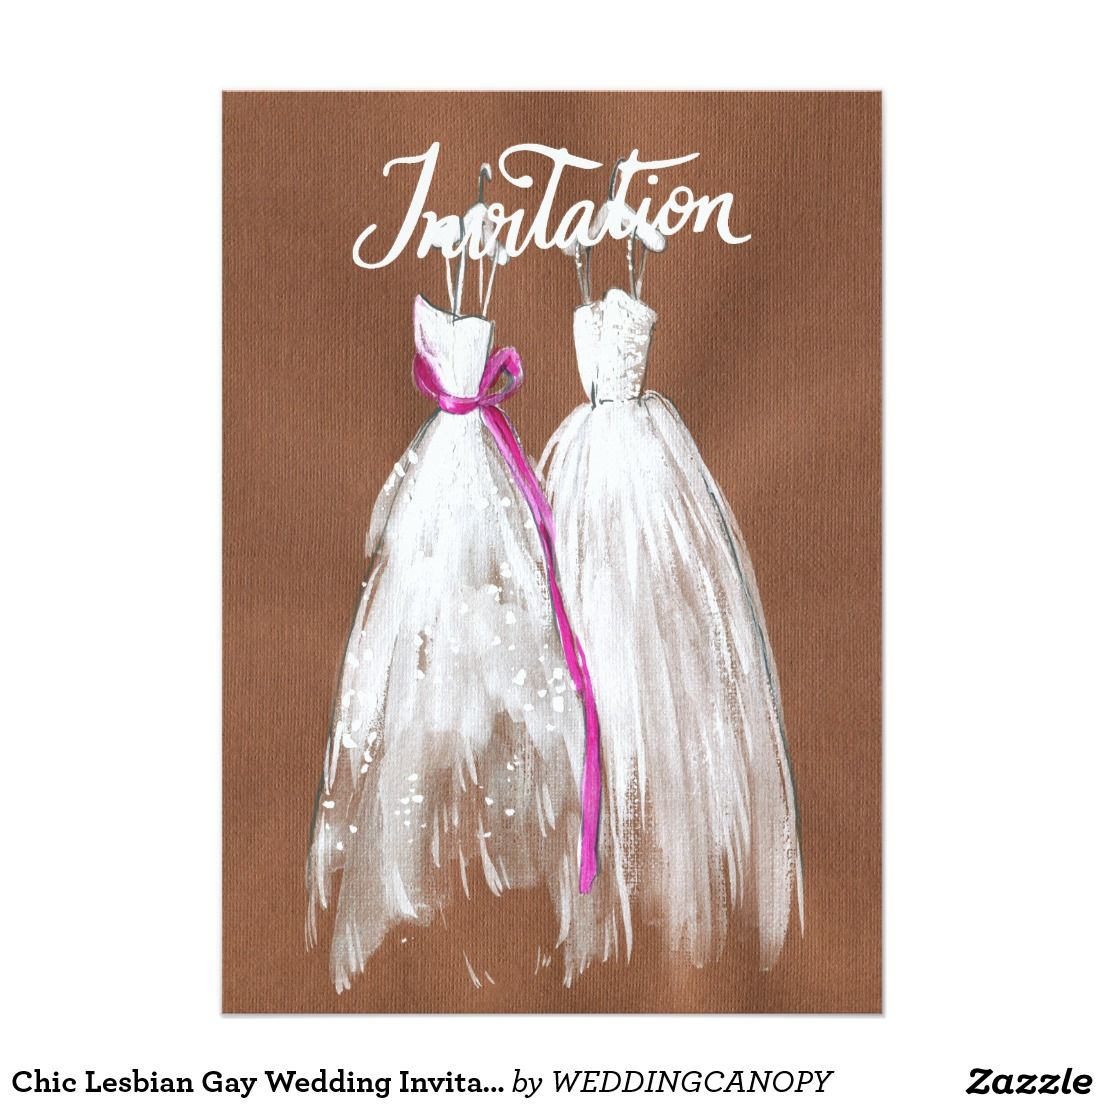 Chic Lesbian Gay Wedding Invitation Two Brides Lesbian And Weddings